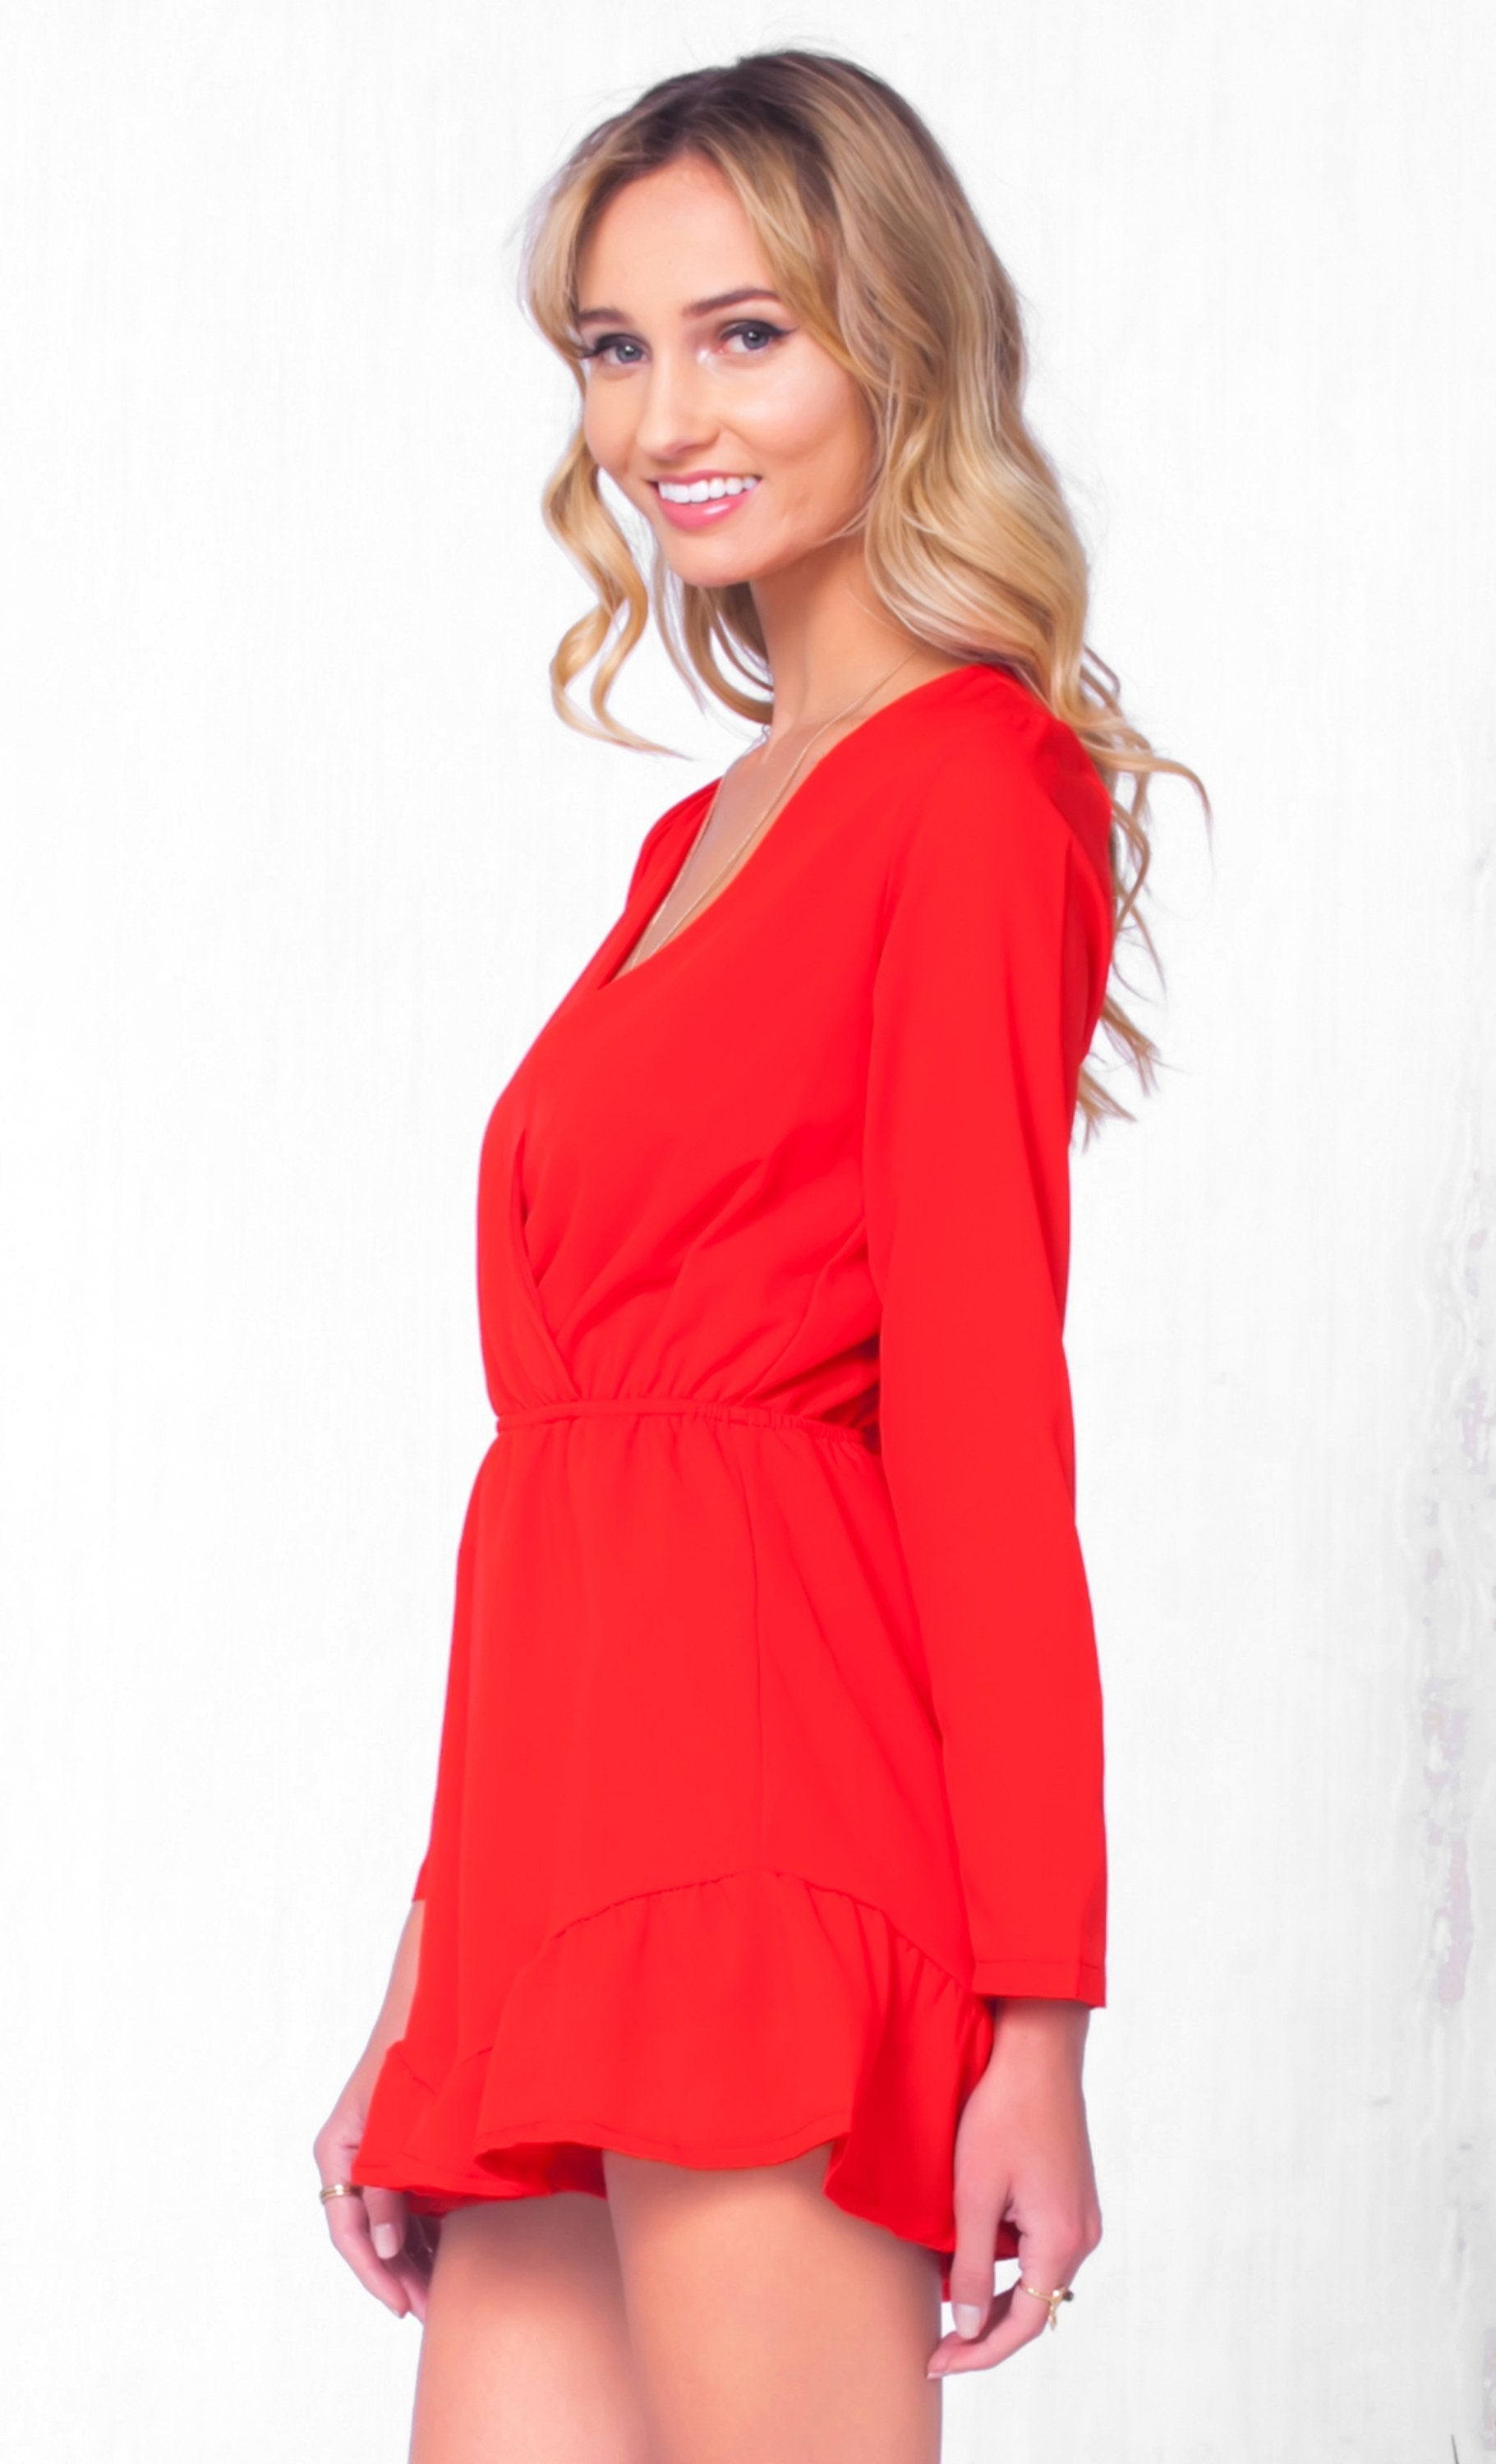 Indie XO Be Amazed Red Chiffon Long Sleeve Cross Wrap V Neck Elastic Waist Ruffle Short Romper - Just Ours! - Sold Out